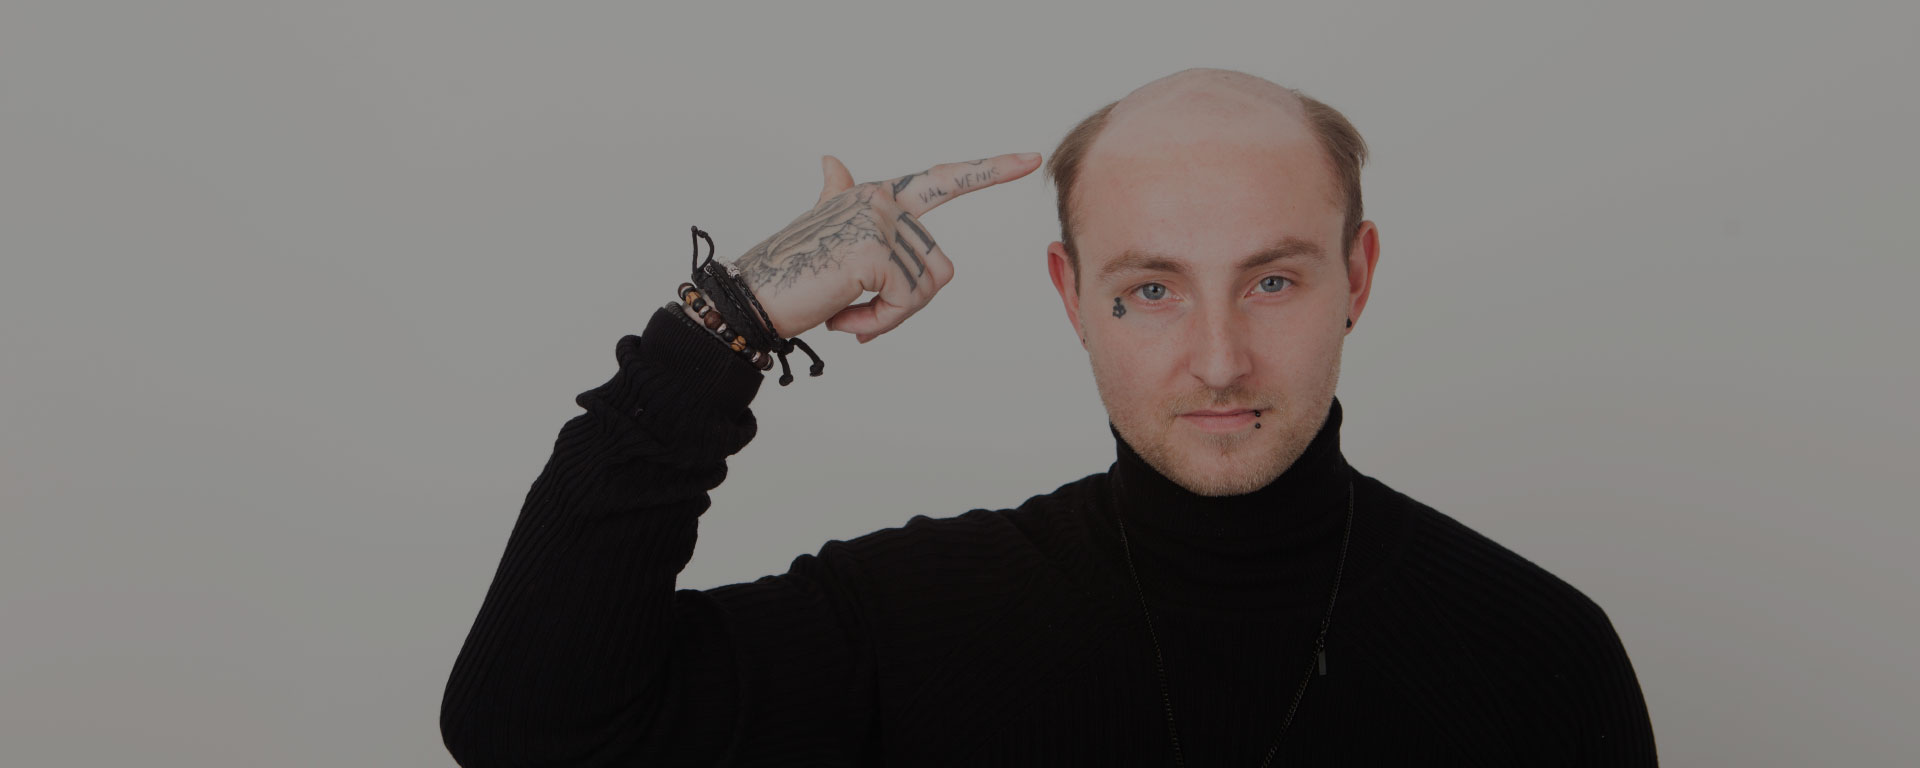 hair replacement consultation